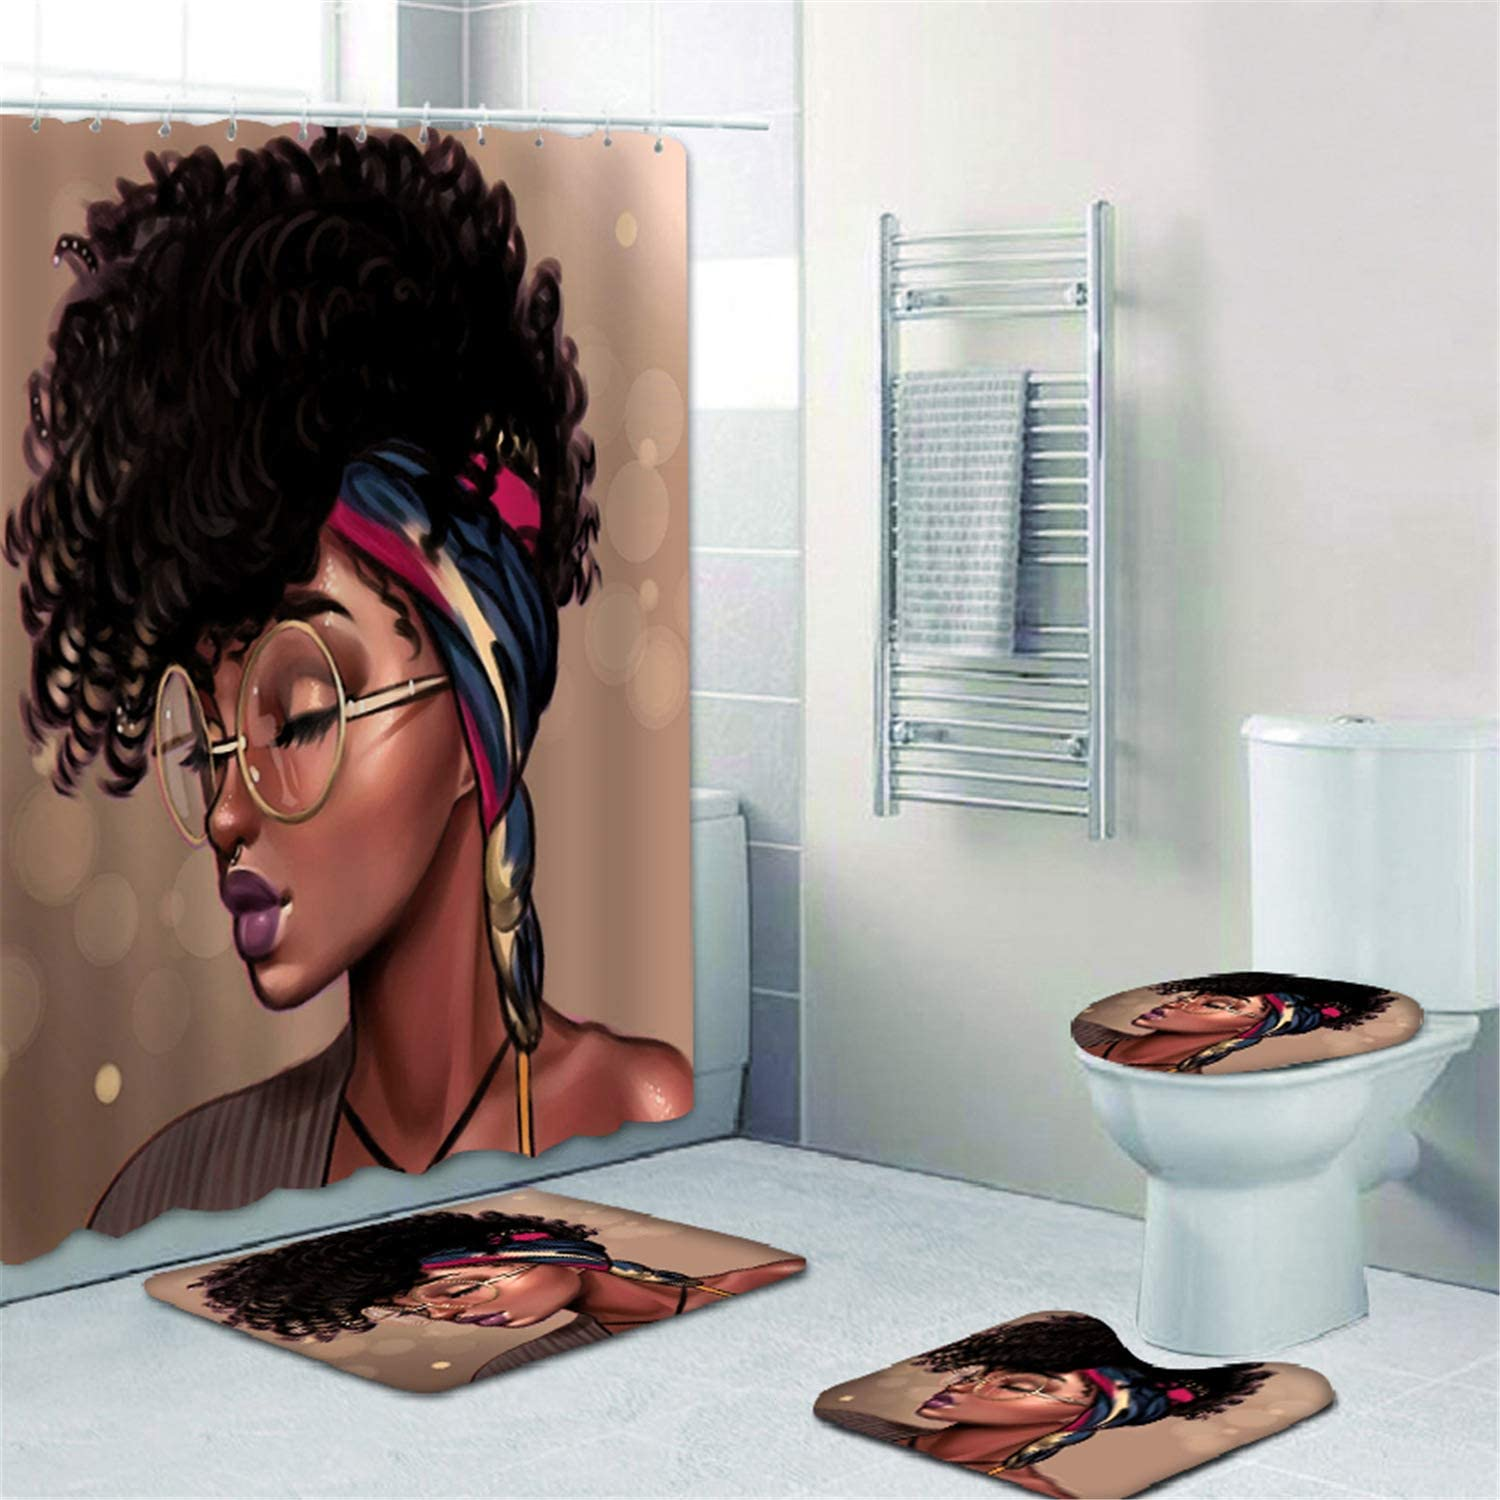 NMPPTM Afro African Women National products Shower American Wo Now free shipping Set Curtain